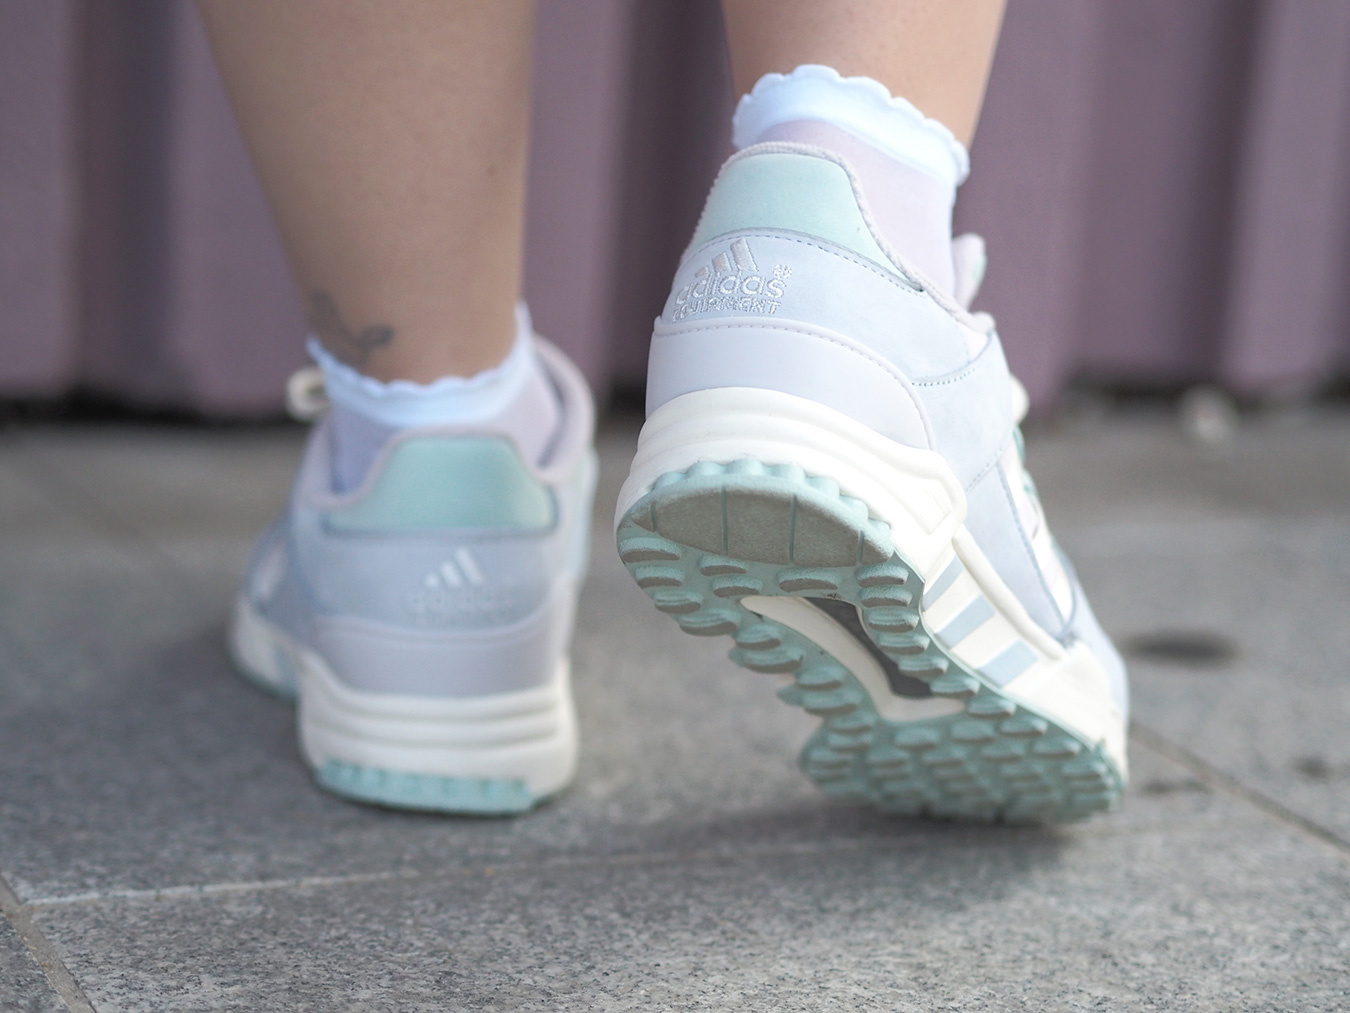 Adidas mieqt support